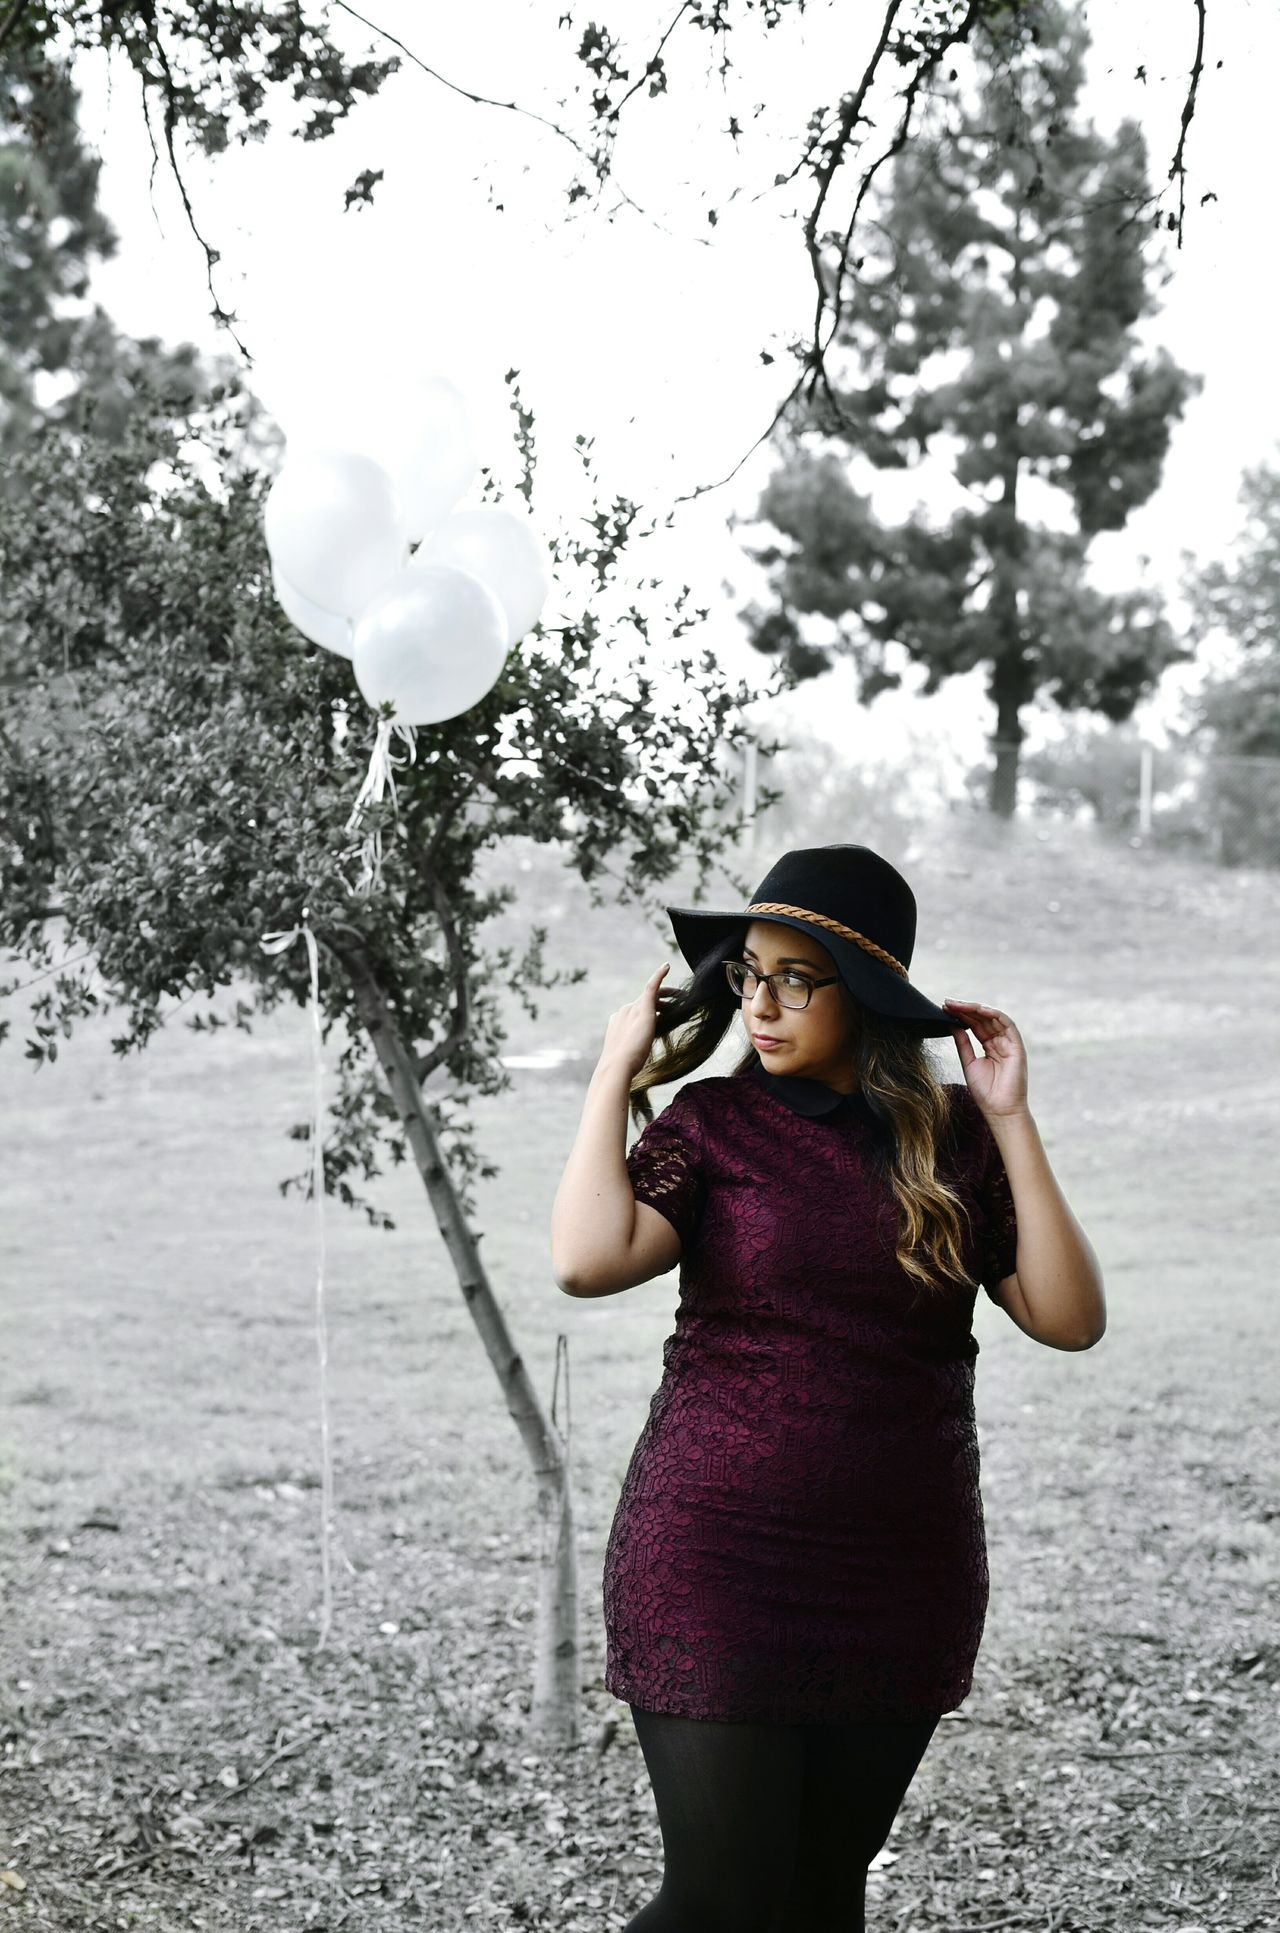 Outdoors Balloons Dress Hat Sun Bonnets Big Hat Color Splash Black And White Nature Trees Grass